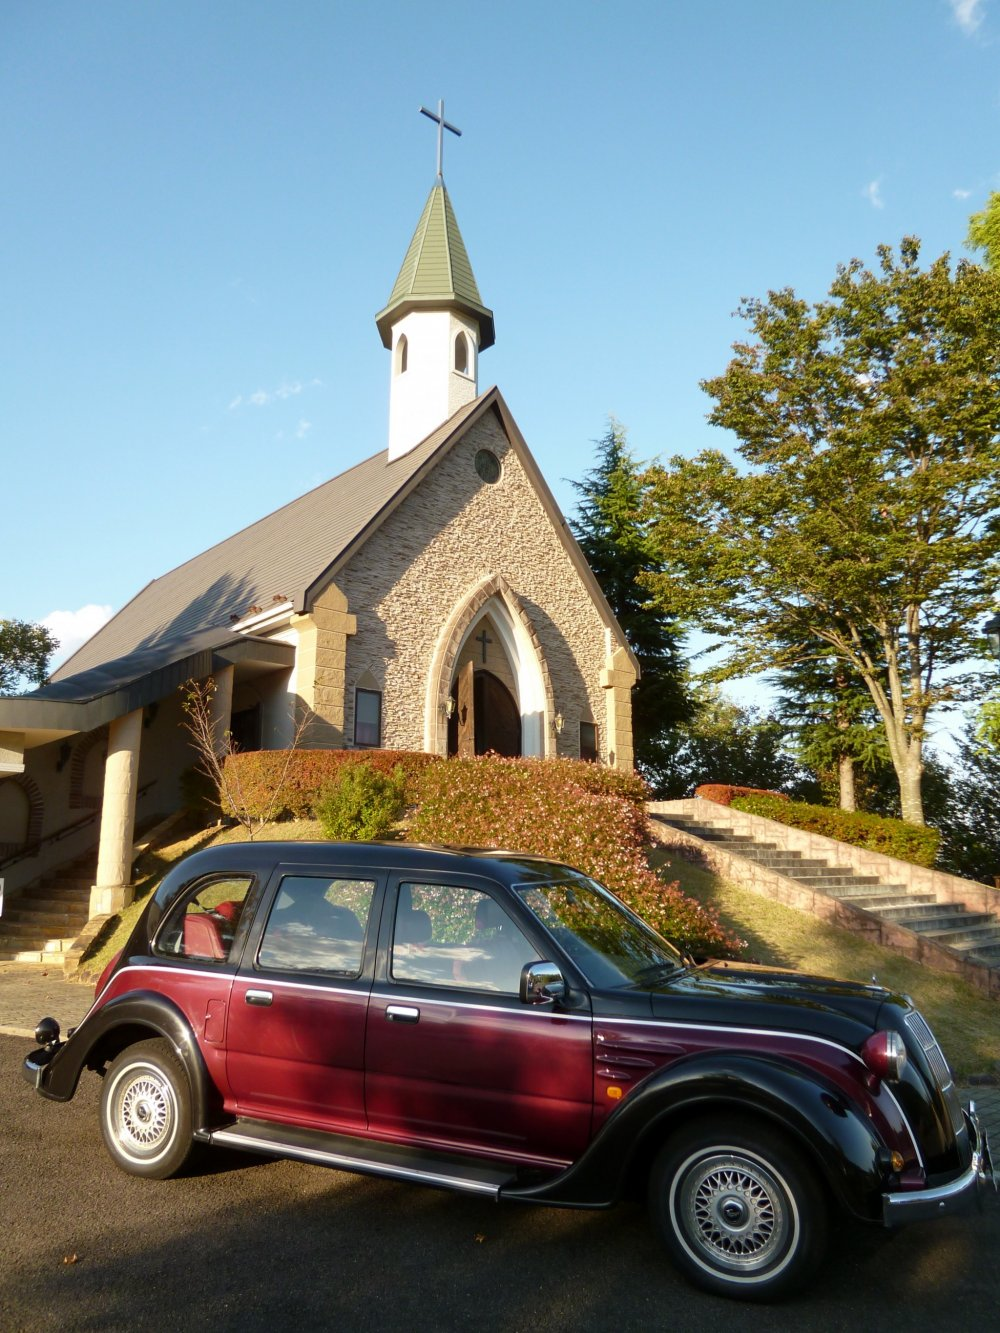 Many Japanese get married at St. Anna's Church